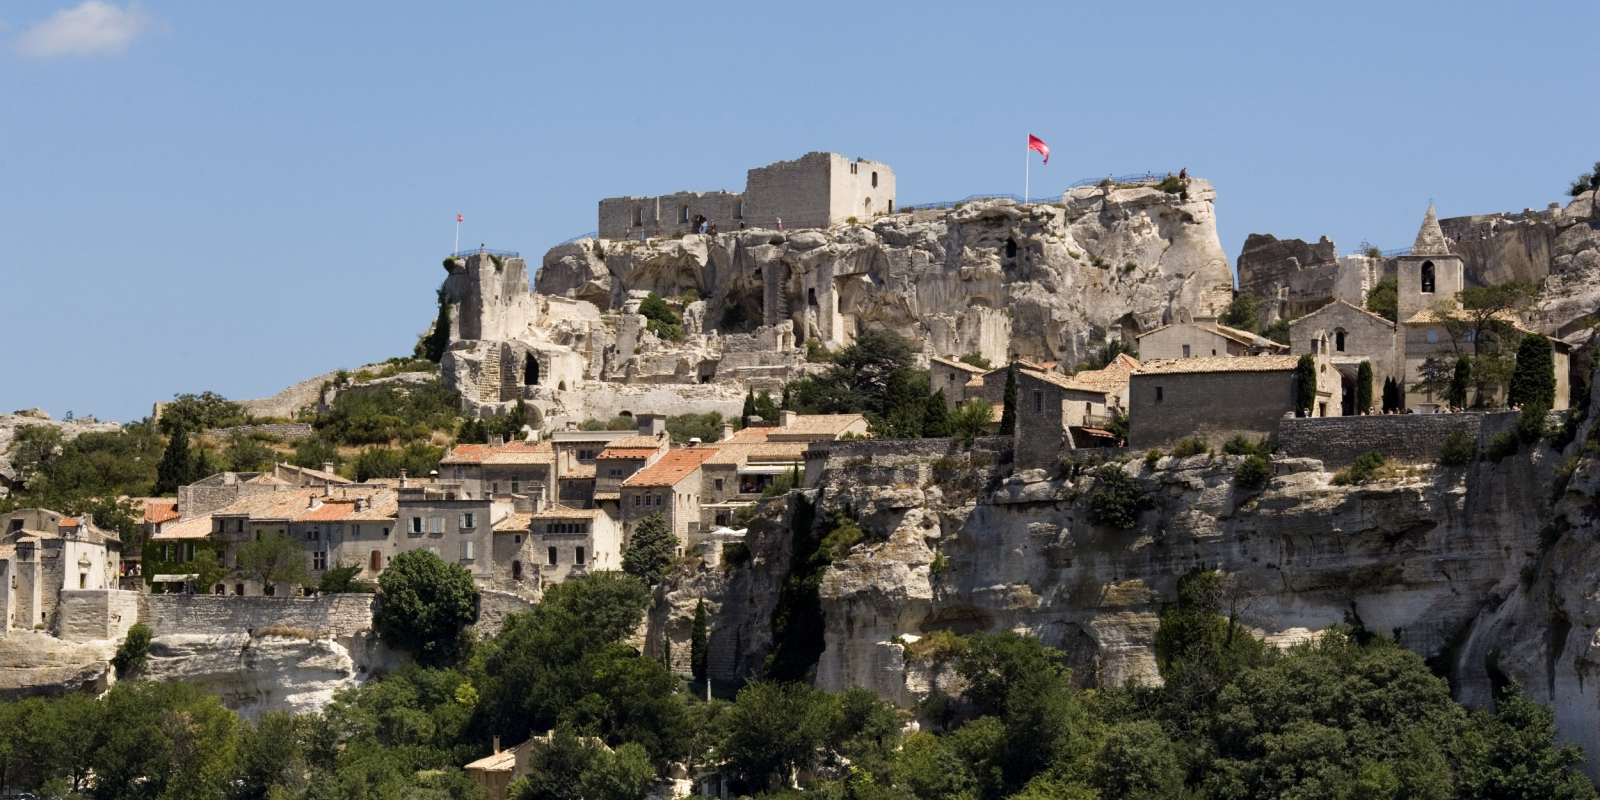 Castle of Les Baux-de-Provence